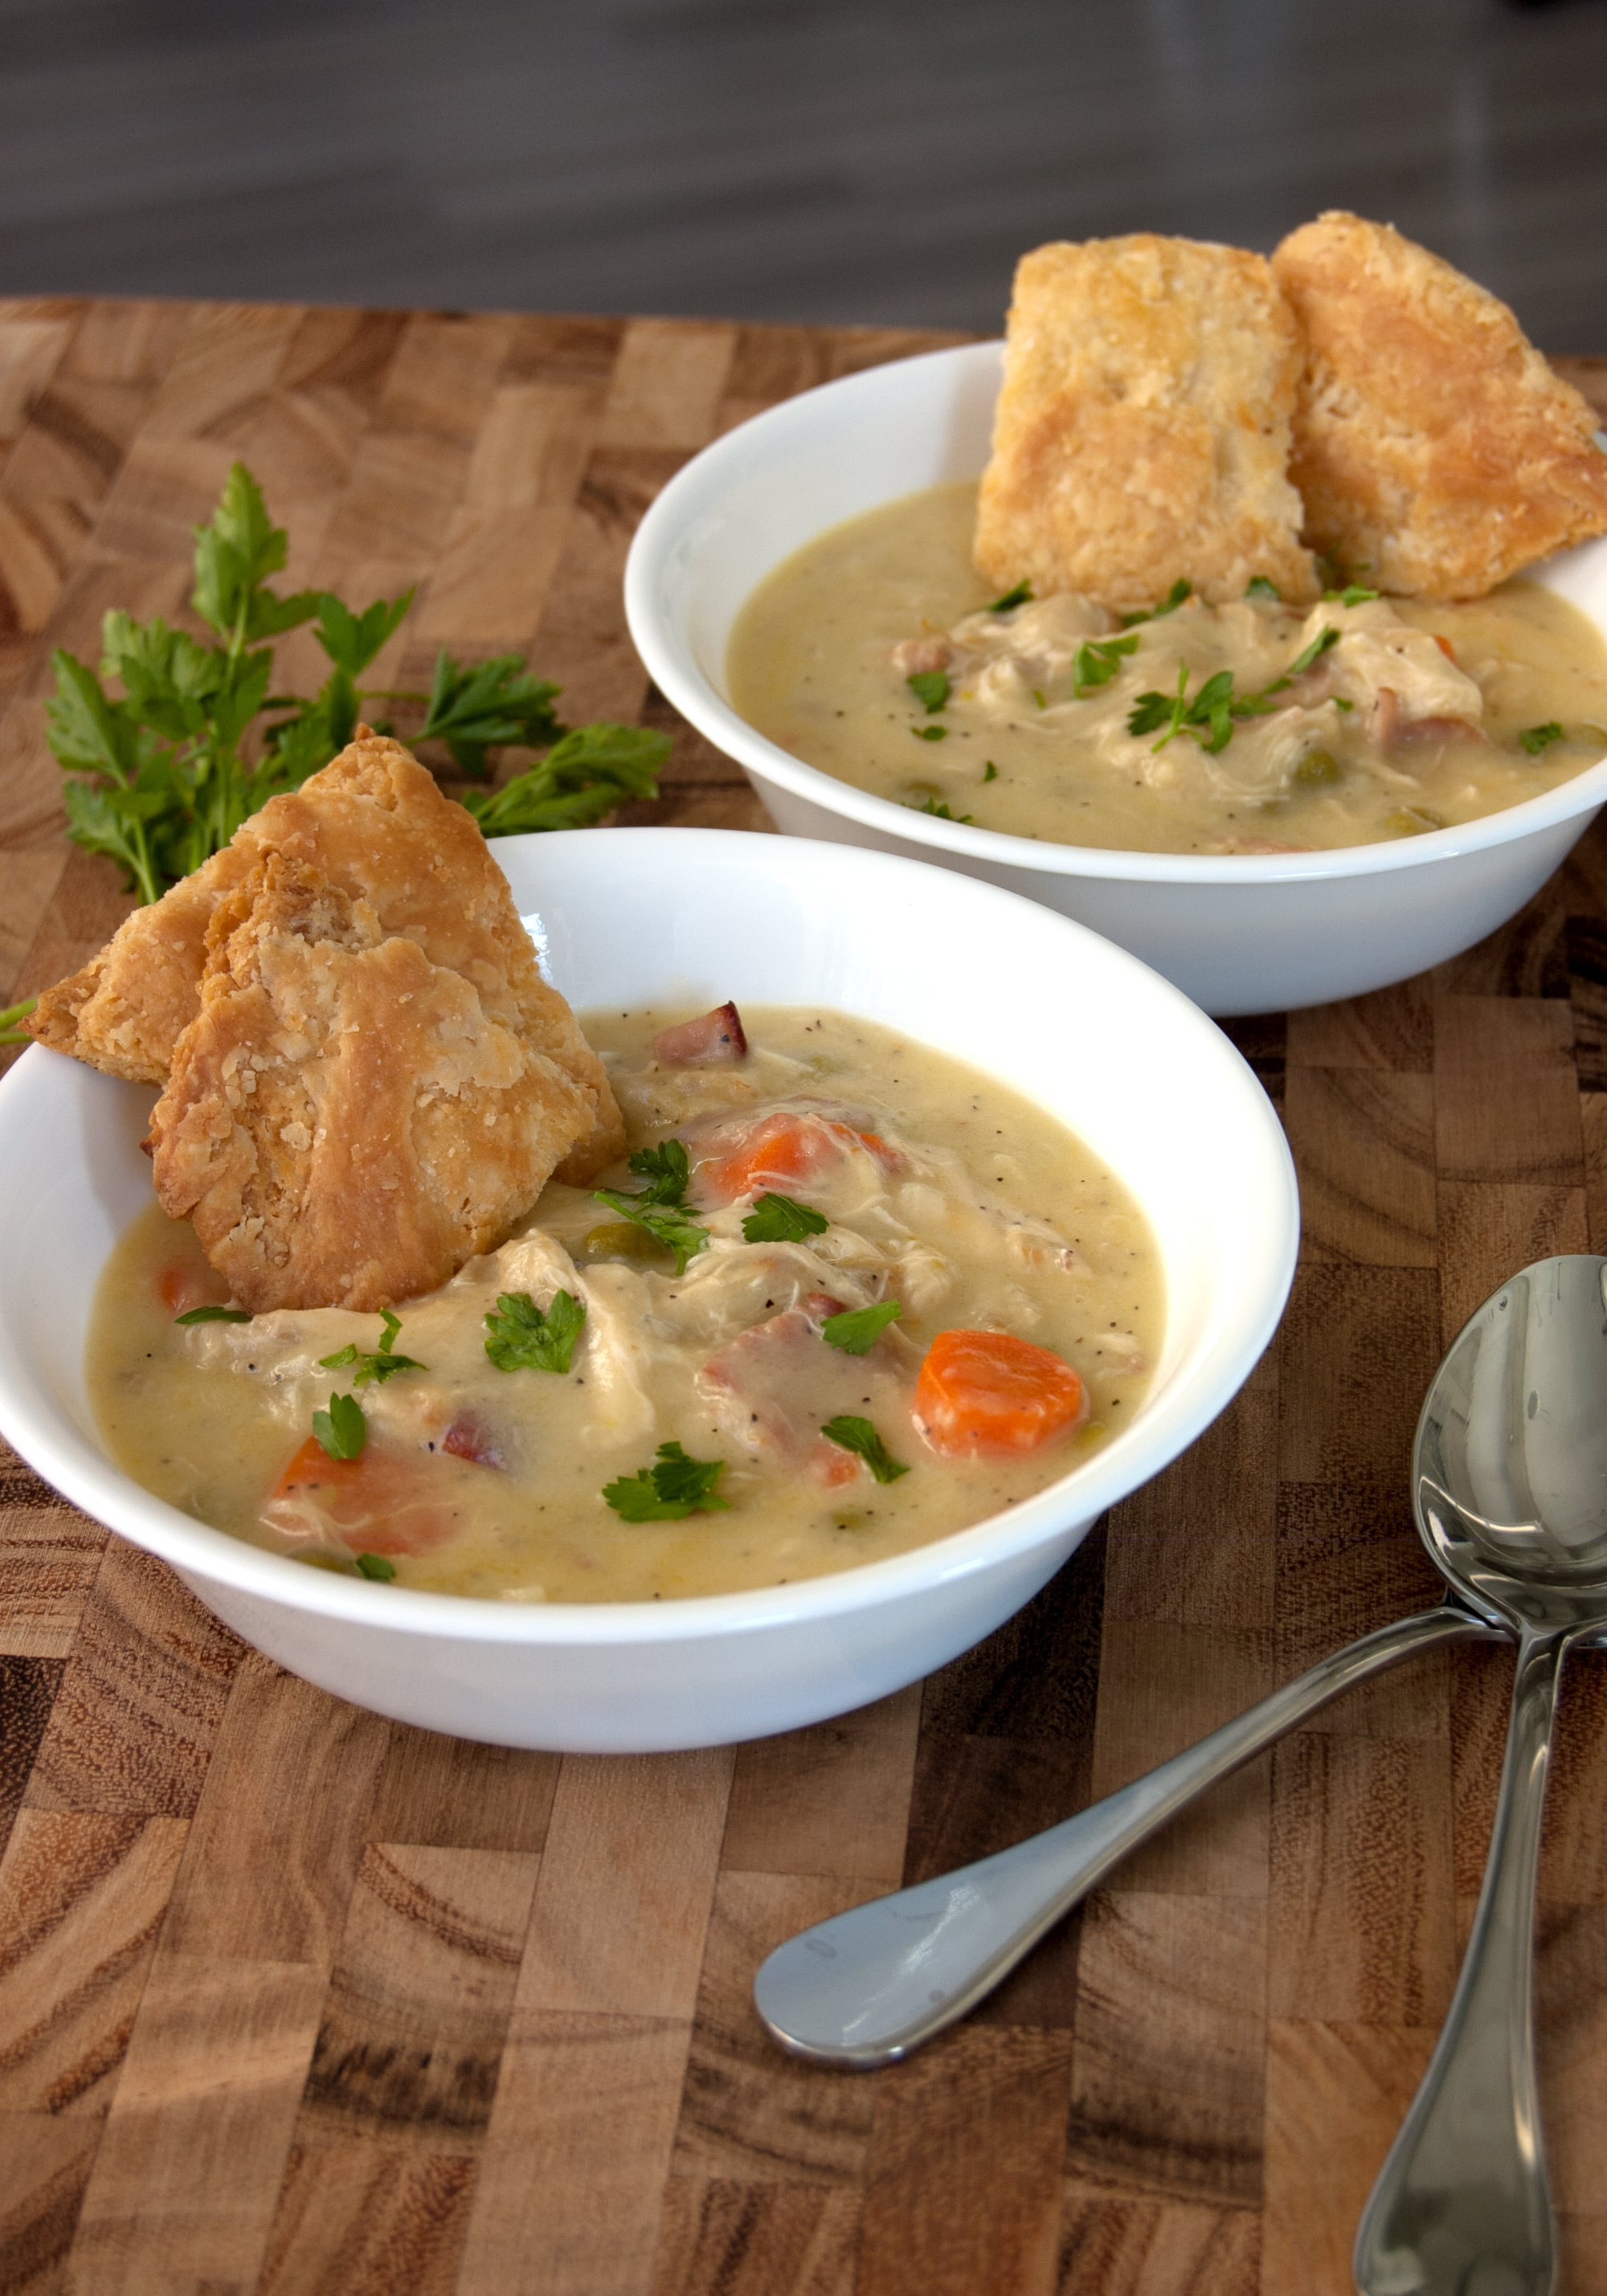 Chicken pot pie soup recipe popsugar food after making this recipe youll understand why chrissy teigen calls herself the soup master its everything you love about chicken pot pie rich hearty forumfinder Image collections